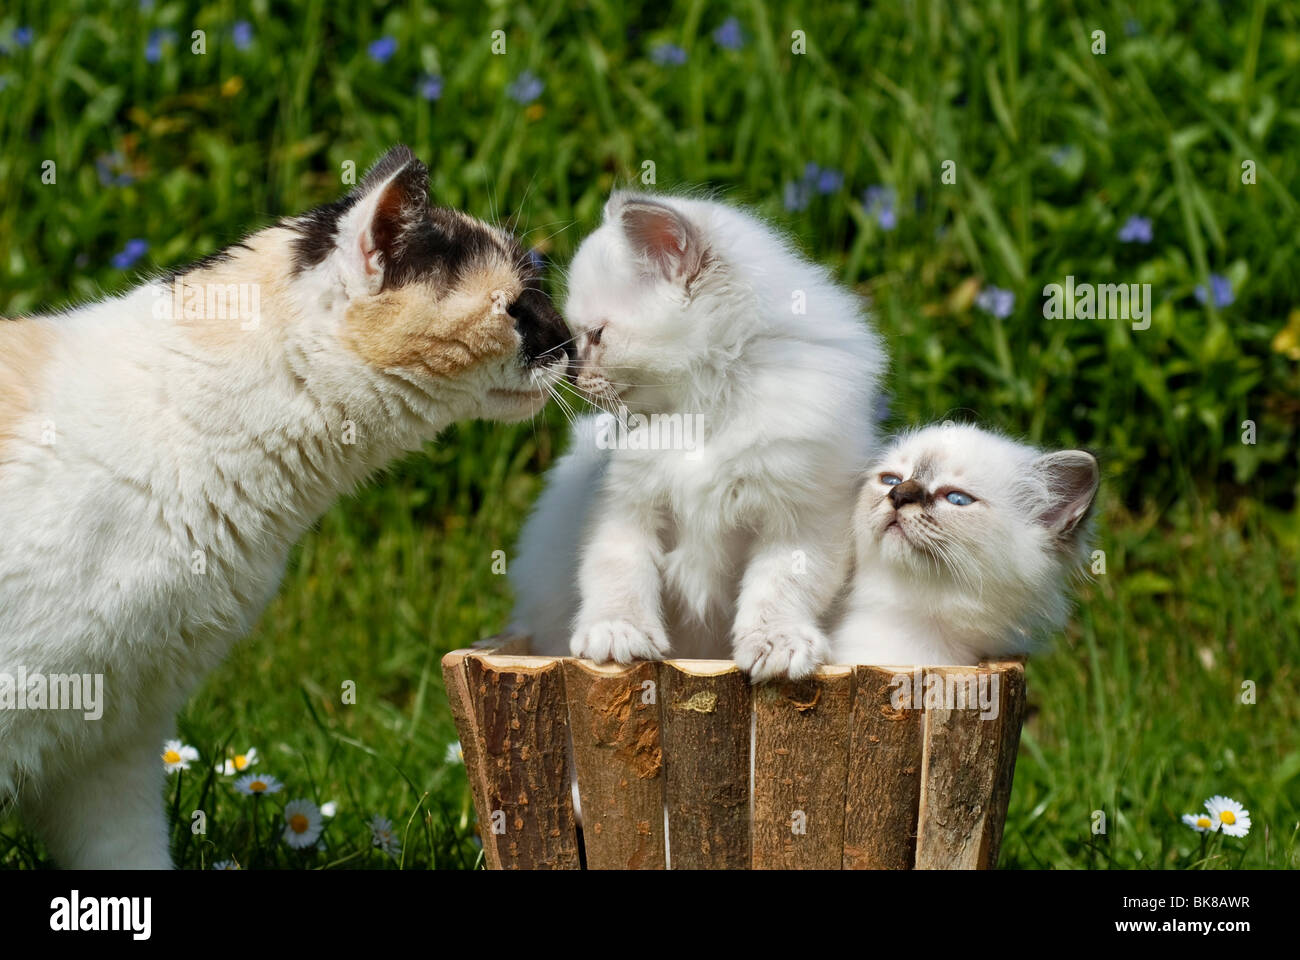 Two Birman kittens in a planter, greeting an adult cat - Stock Image